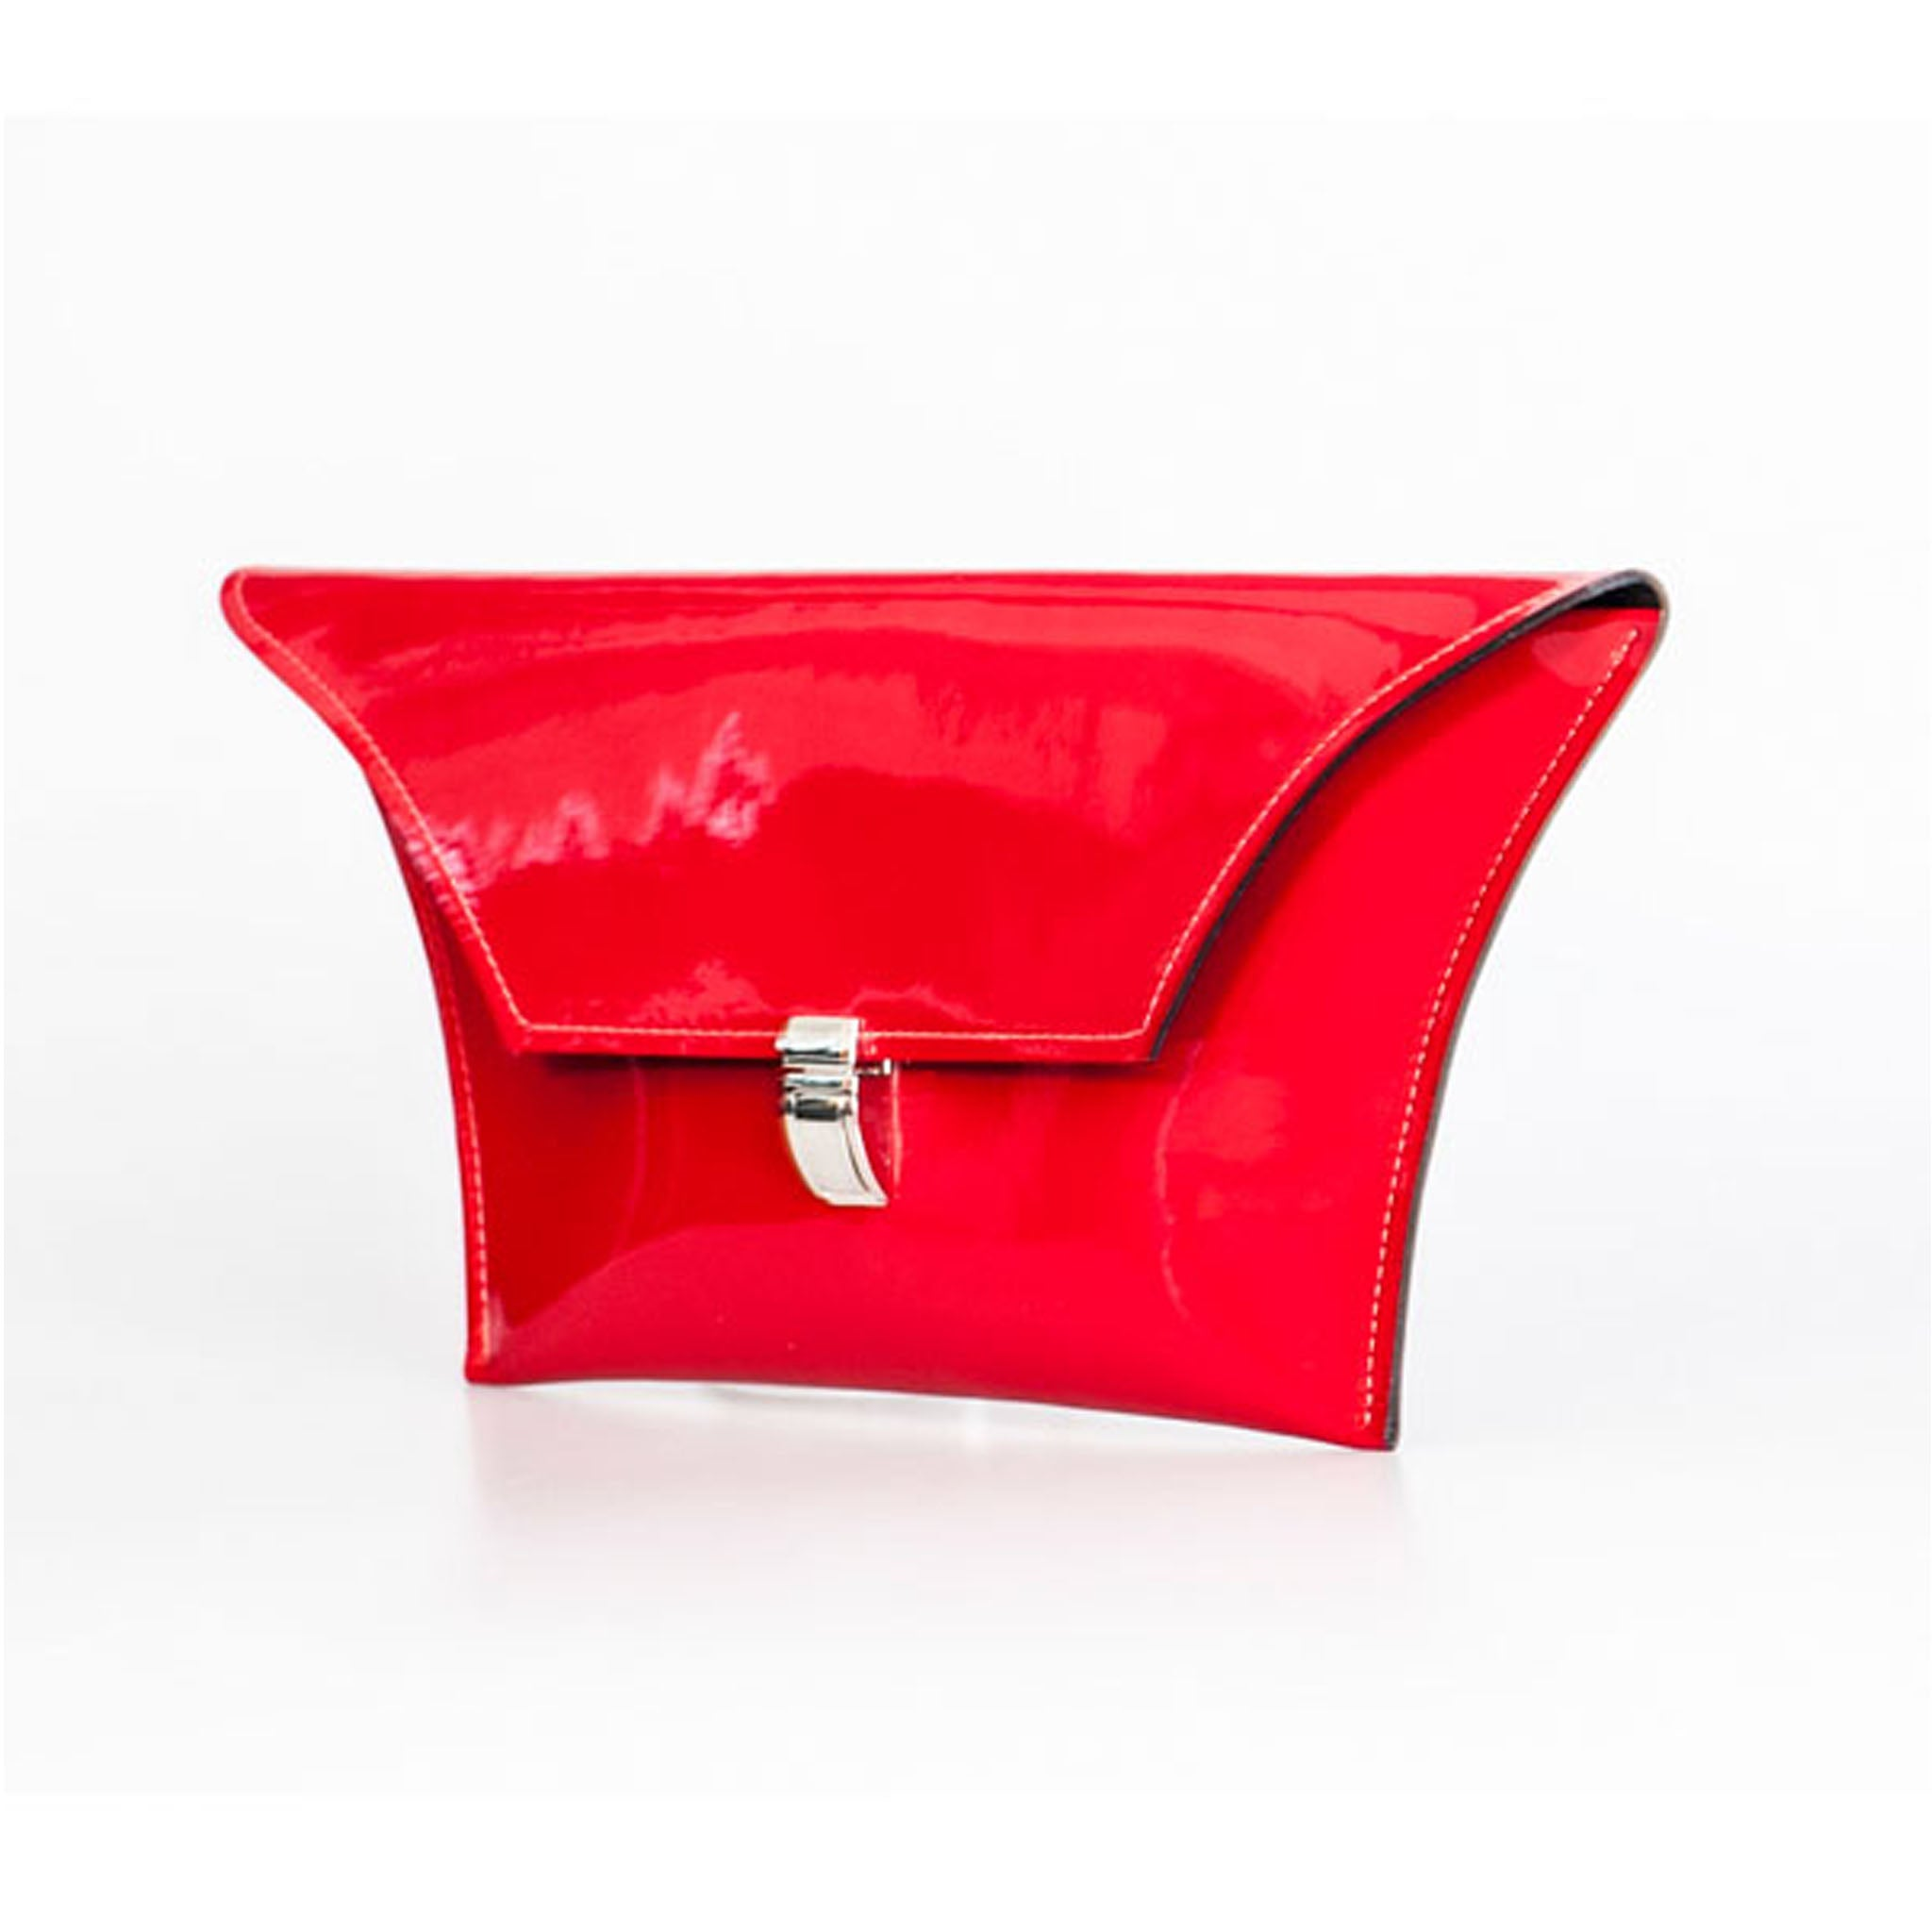 Red Patent Clutch Bag